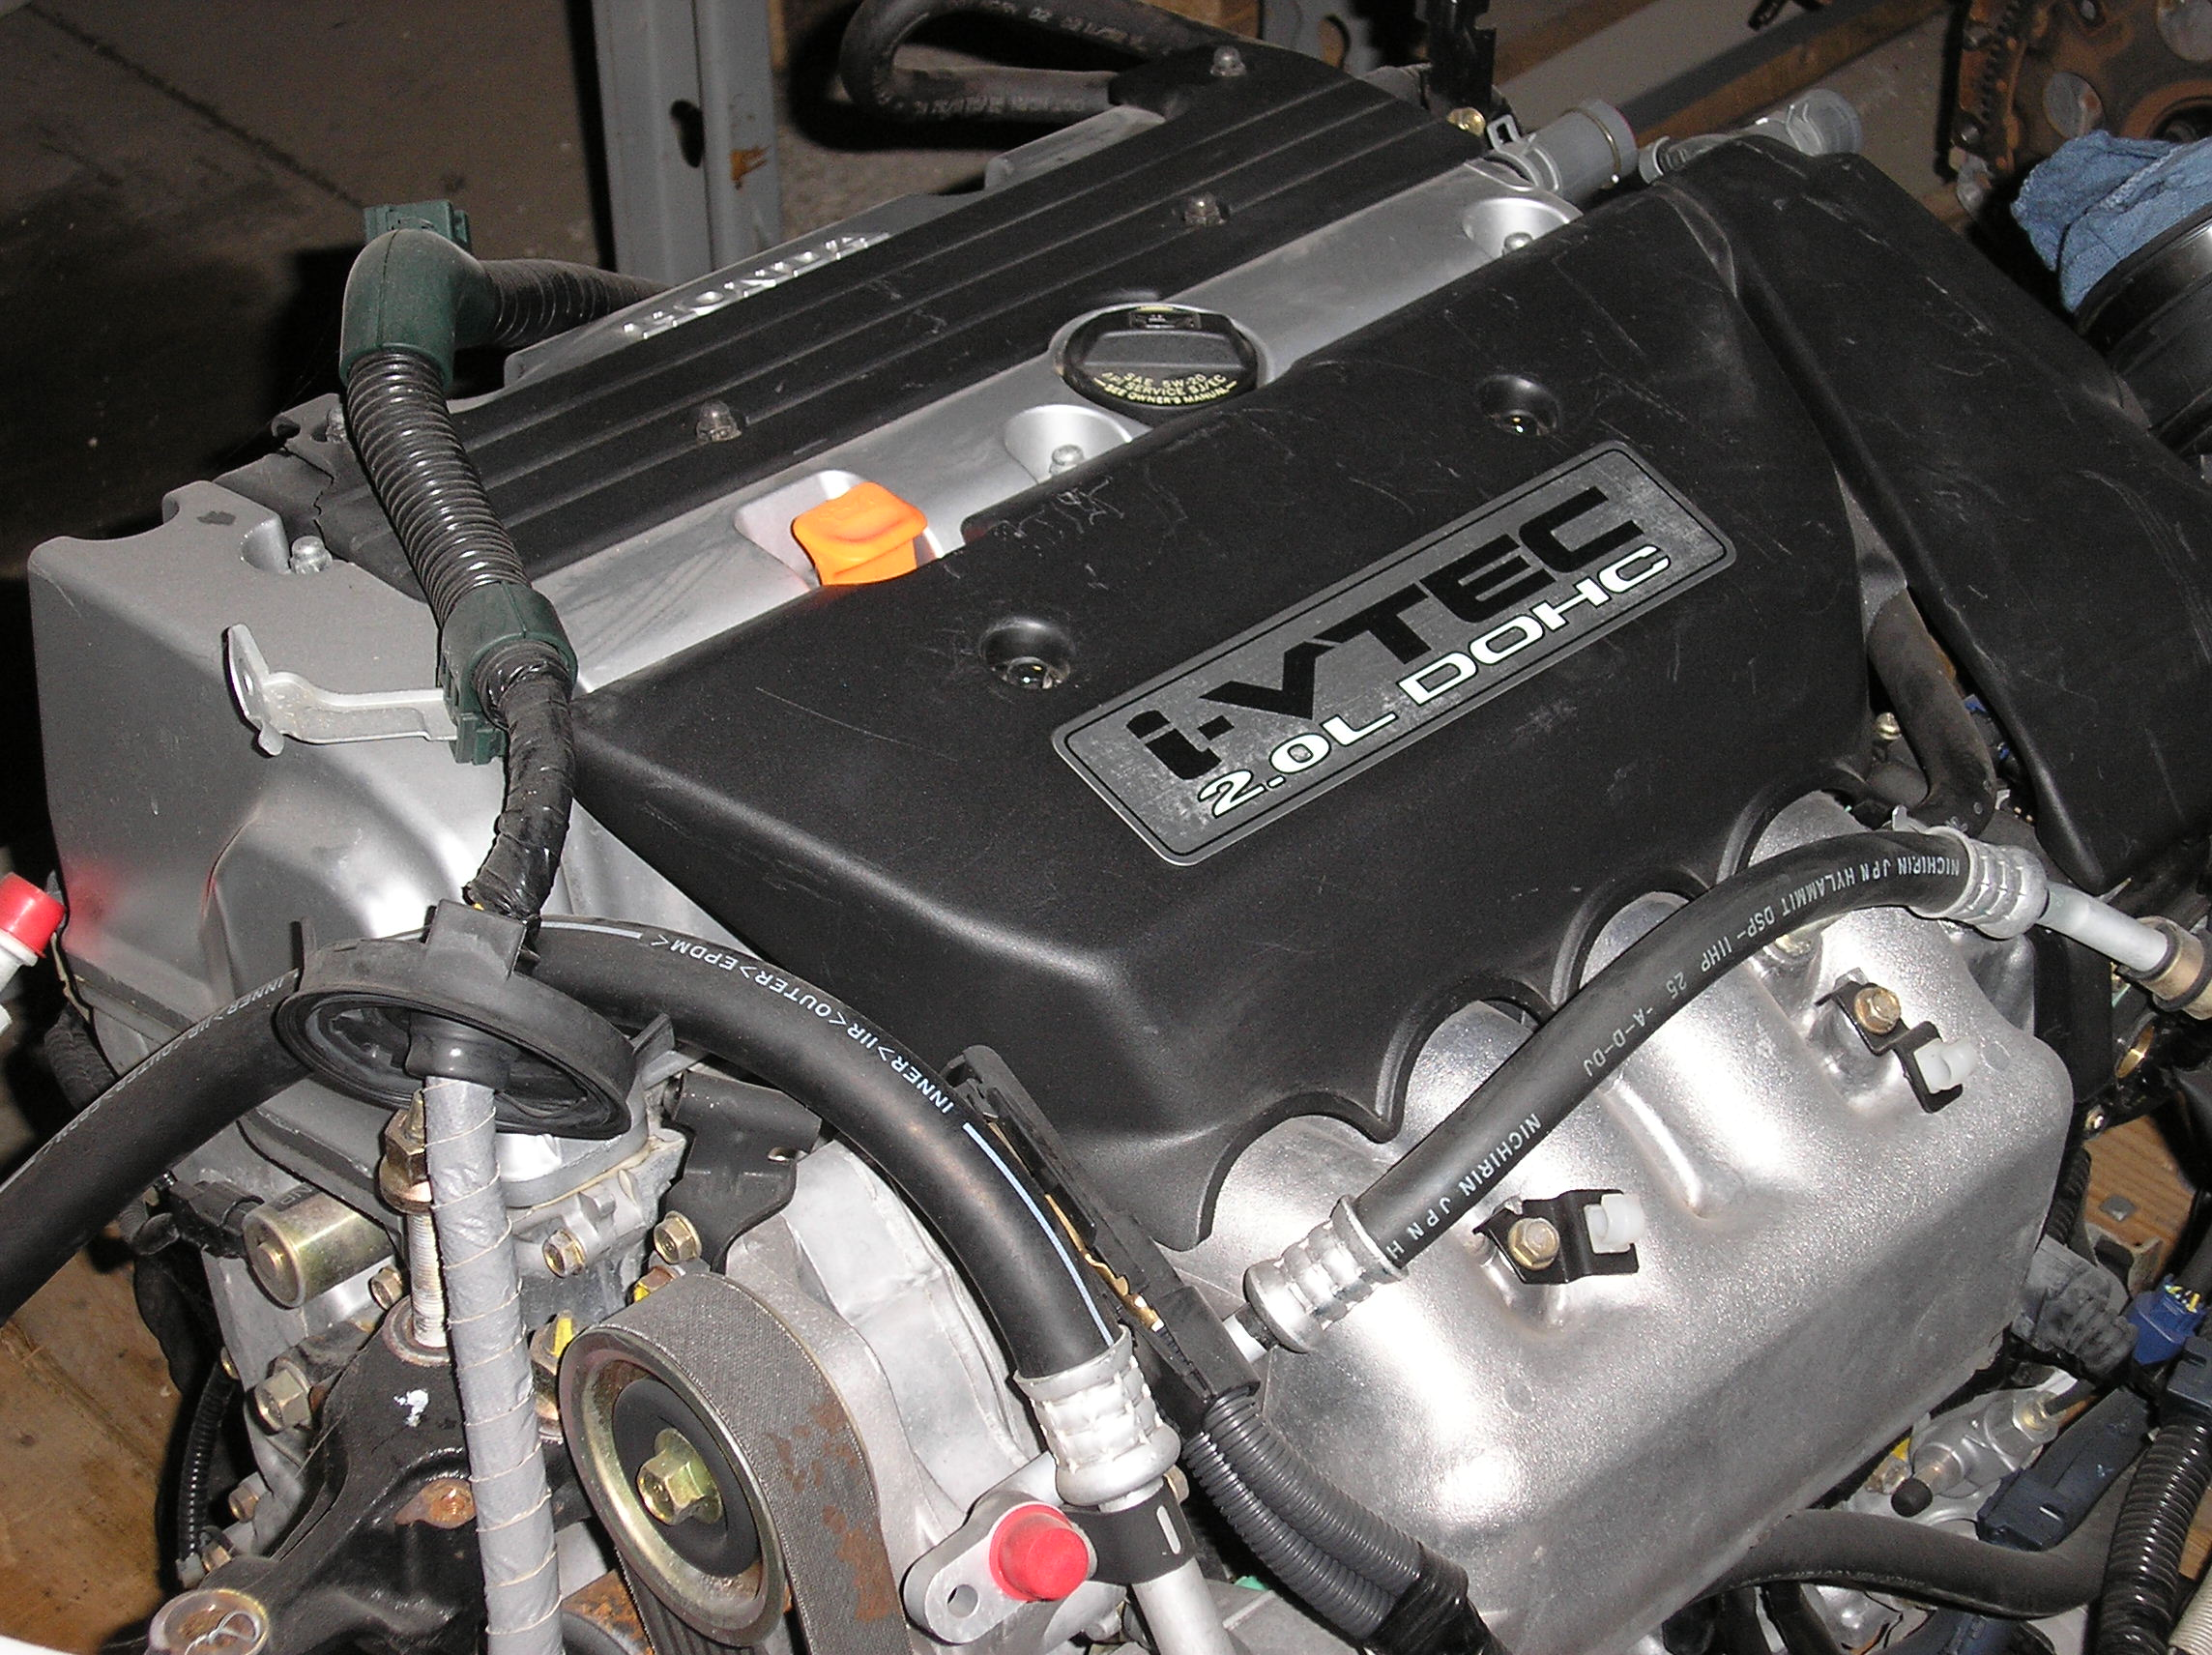 Honda Swapped And Boosted Complete Engine Swaps Turbo Systems 96 Accord Vtec Wiring Harness Rsx 01 06 K20a3 Dohc Ivtec Swap